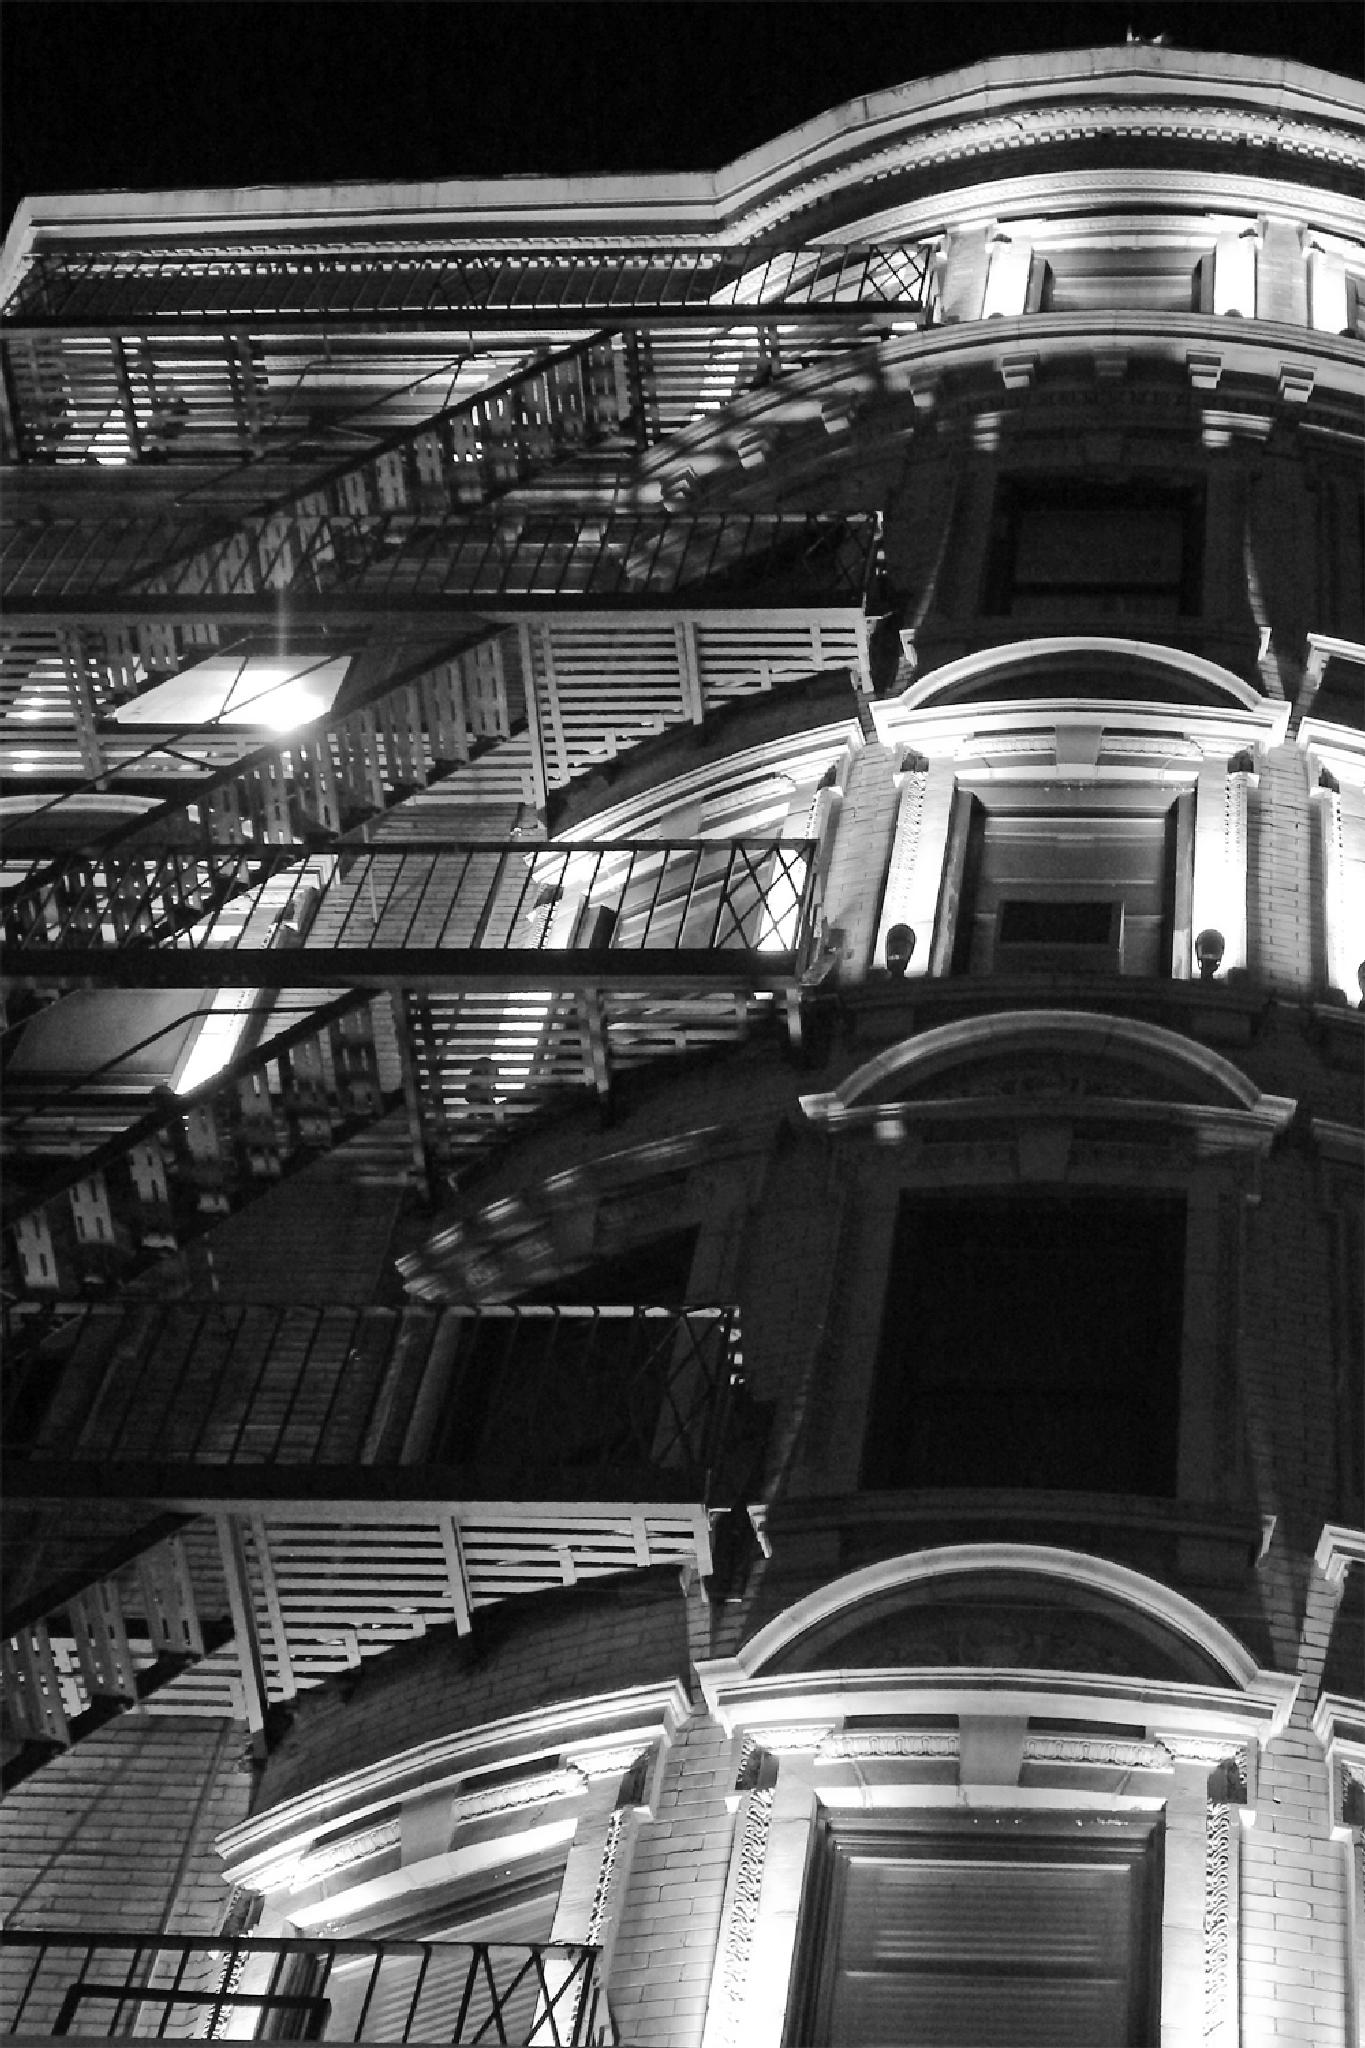 Stairs in the Night, New York City by lilia.malor